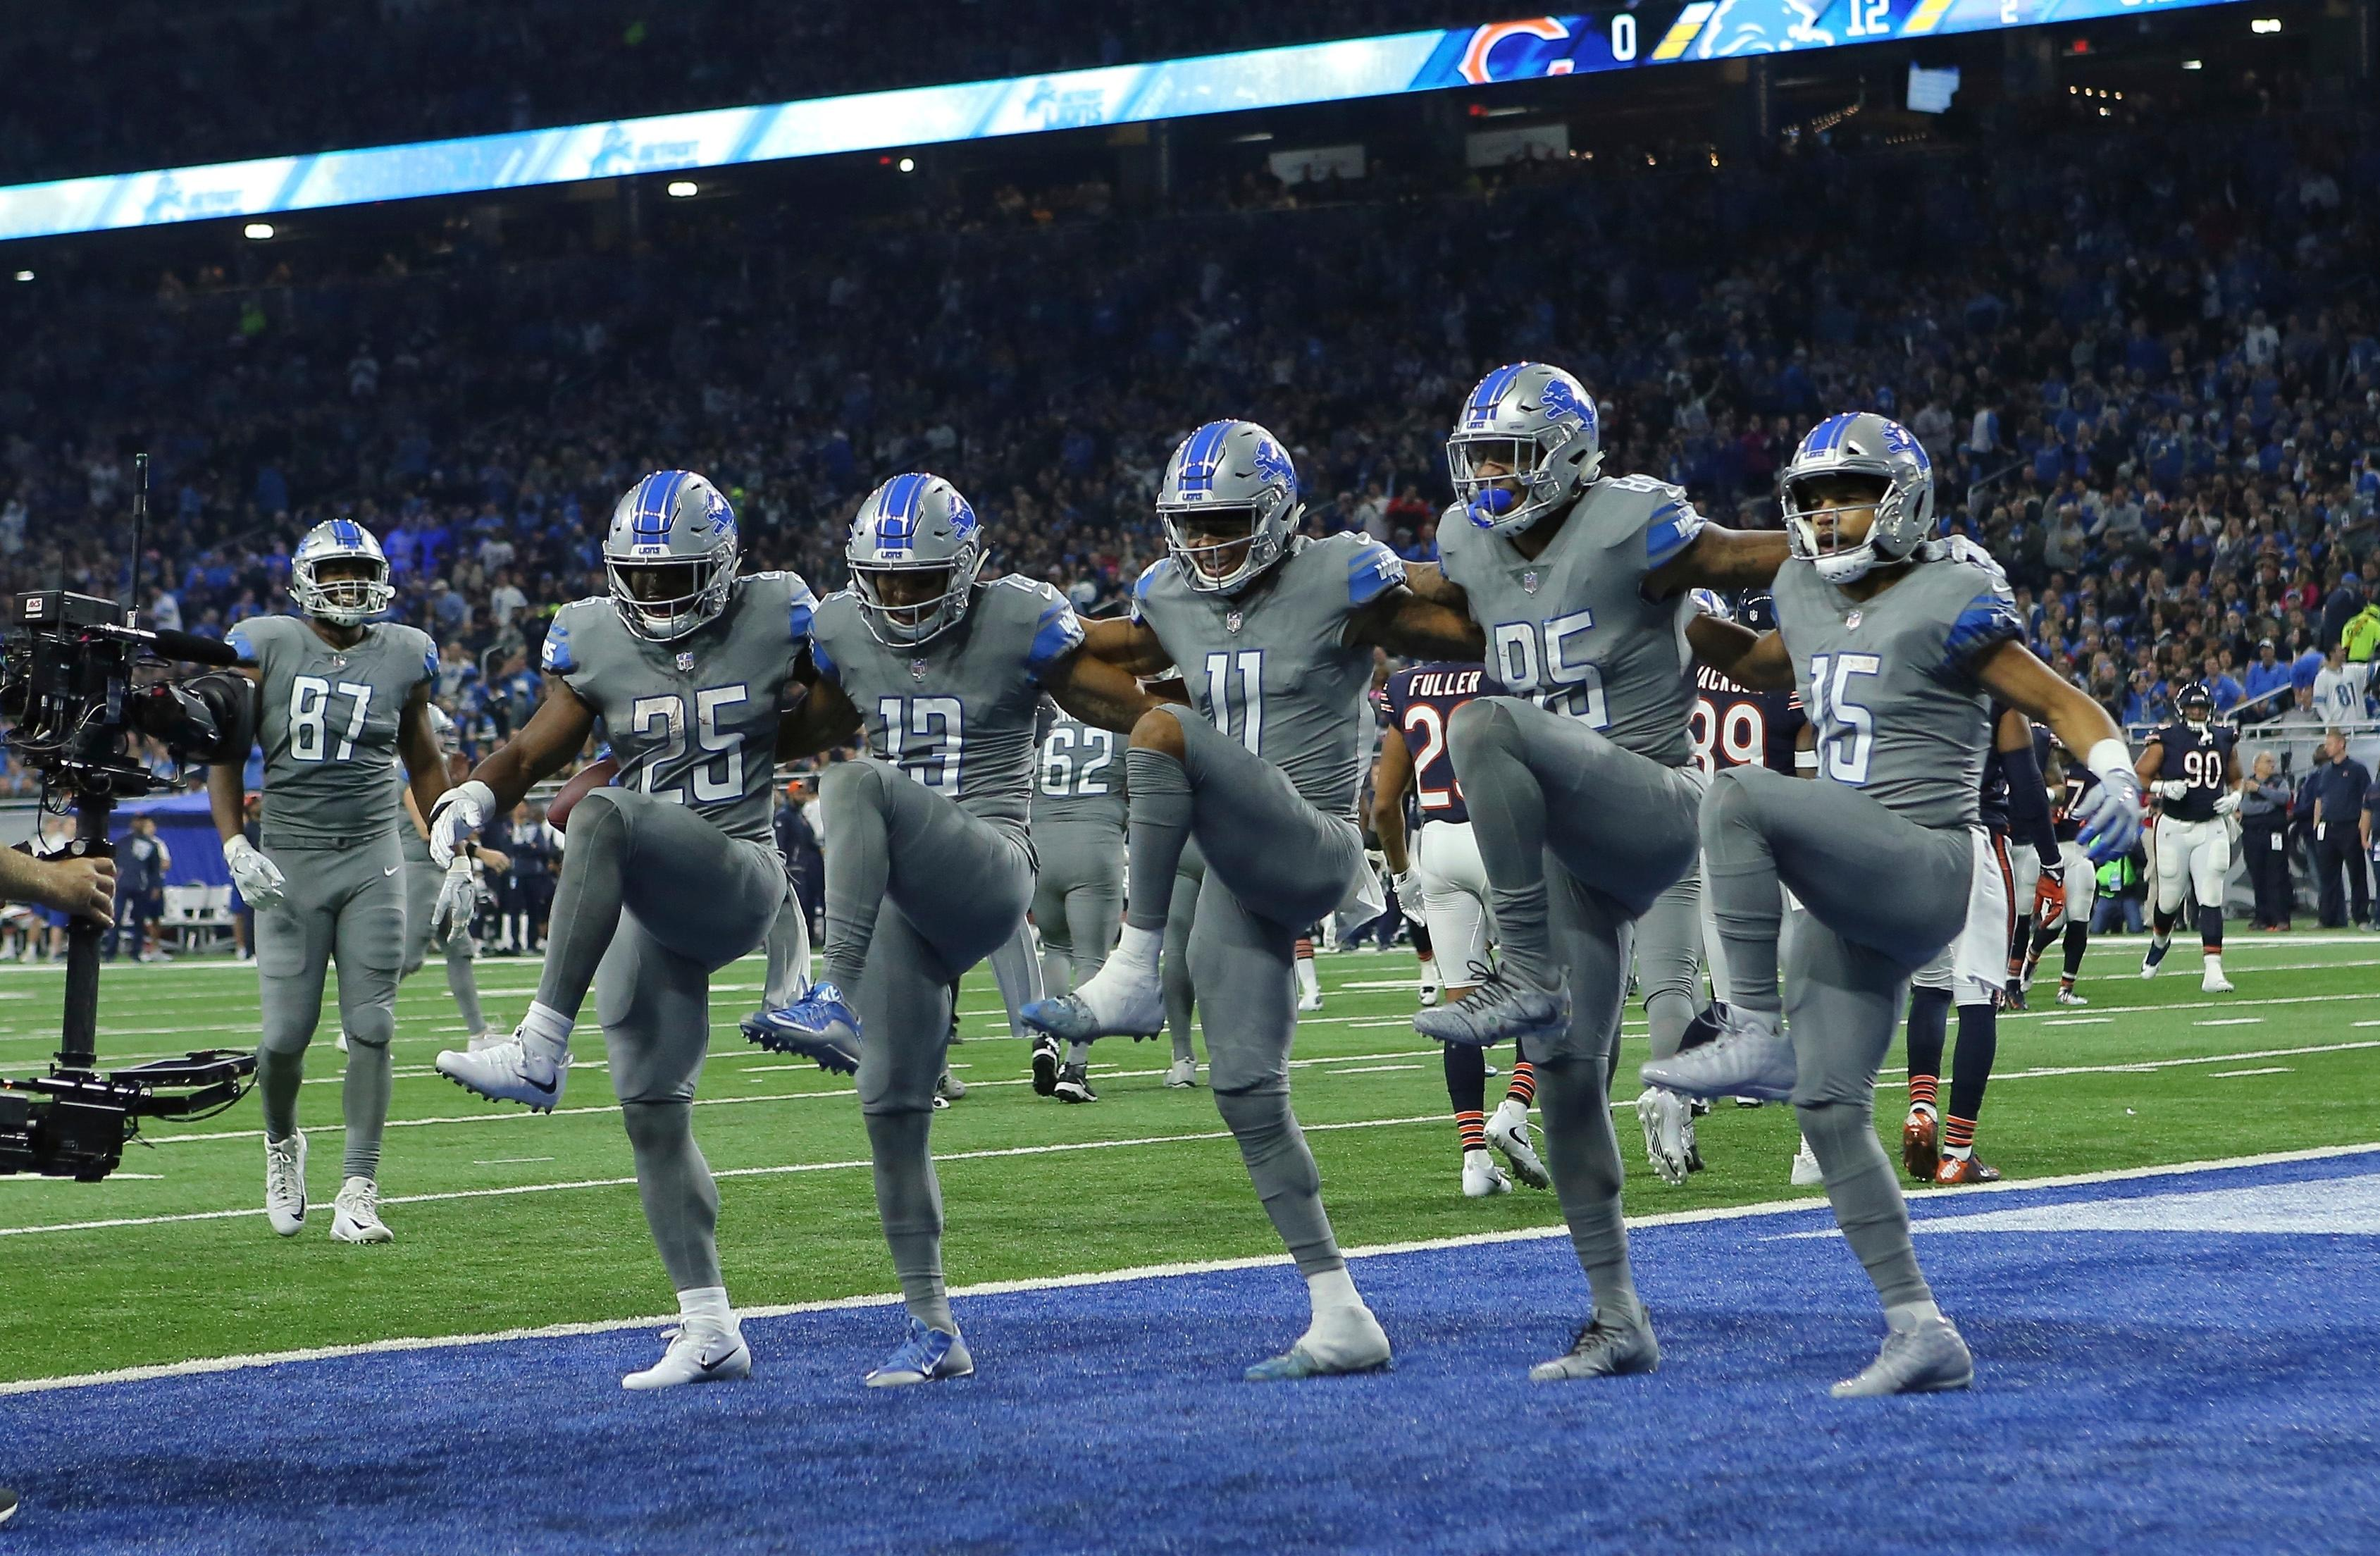 The Detroit Lions form a dance line after a touchdown by wide receiver T.J. Jones (13) during the first half of an NFL football game against the Chicago Bears, Saturday, Dec. 16, 2017, in Detroit. (AP Photo/Rey Del Rio)